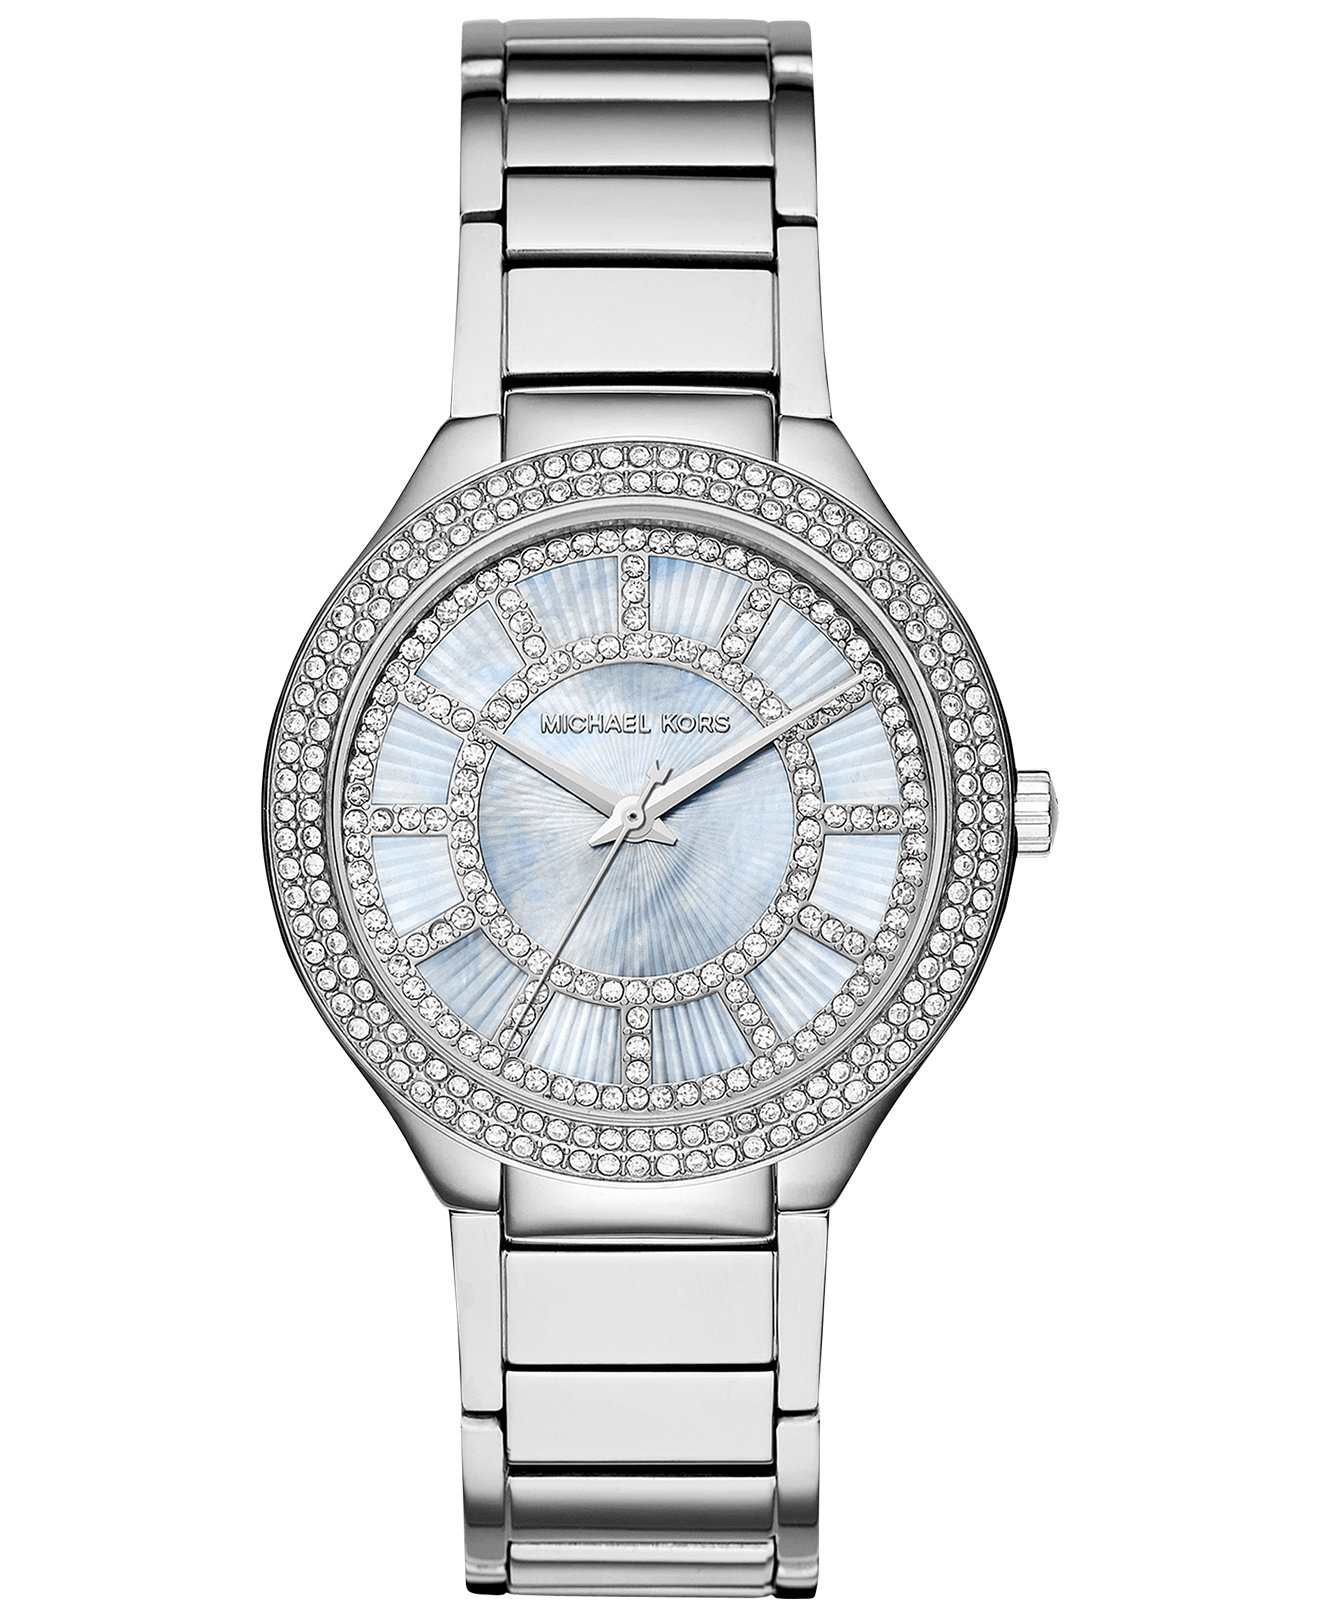 Michael Kors Ceramic Watch Women Michael Kors Women 39 s Kerry